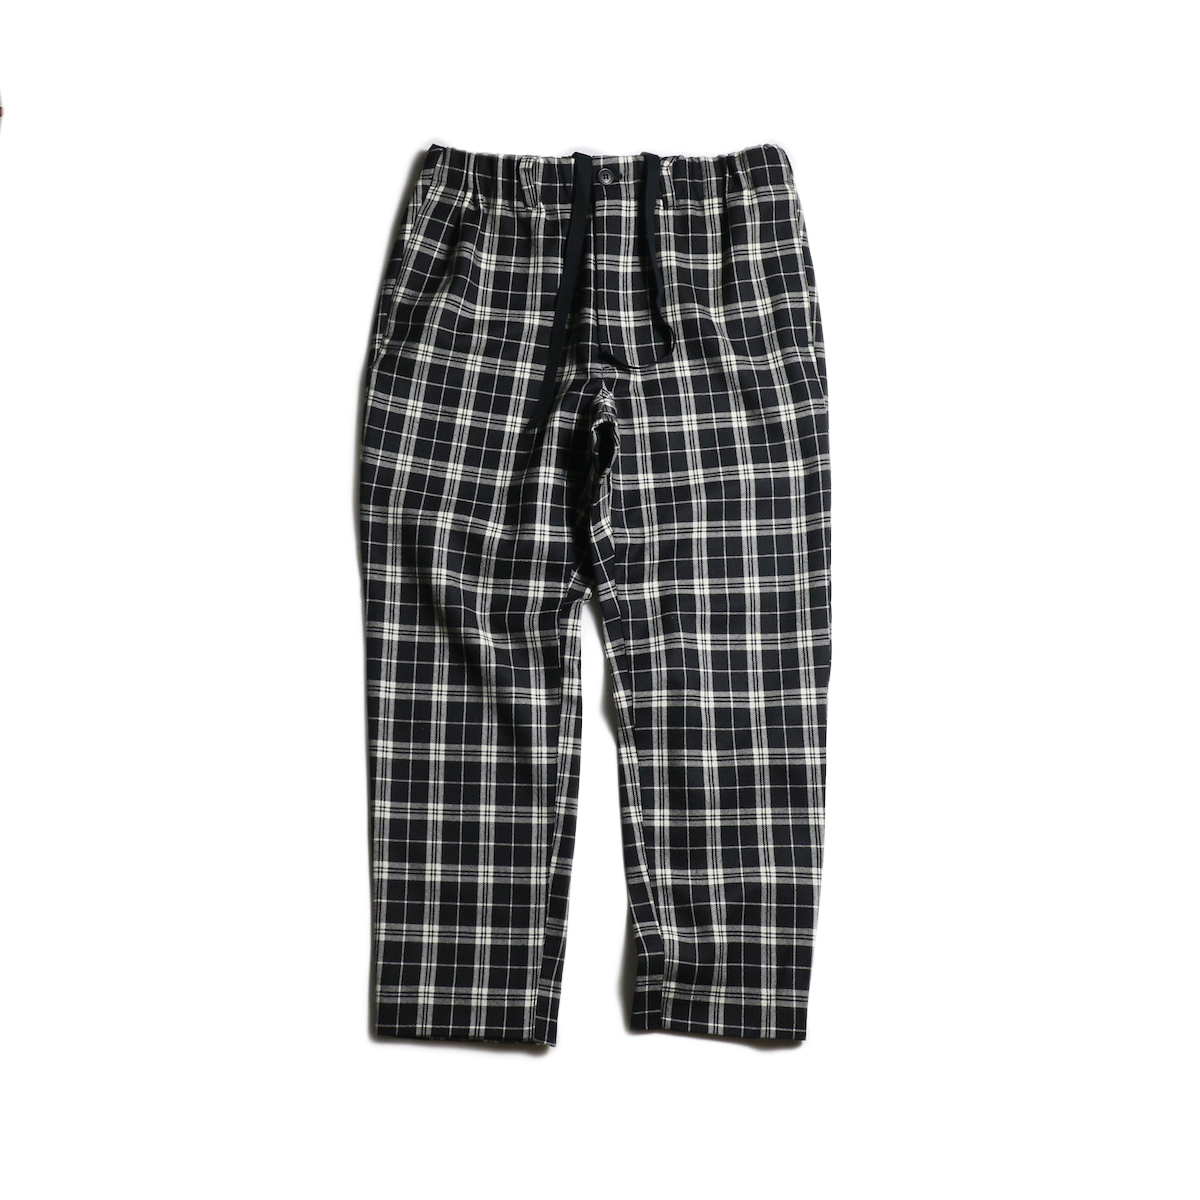 "FUTURE PRIMITIVE / FP EASY PANTS Ⅱ ""CHECKERS"" (Black)"